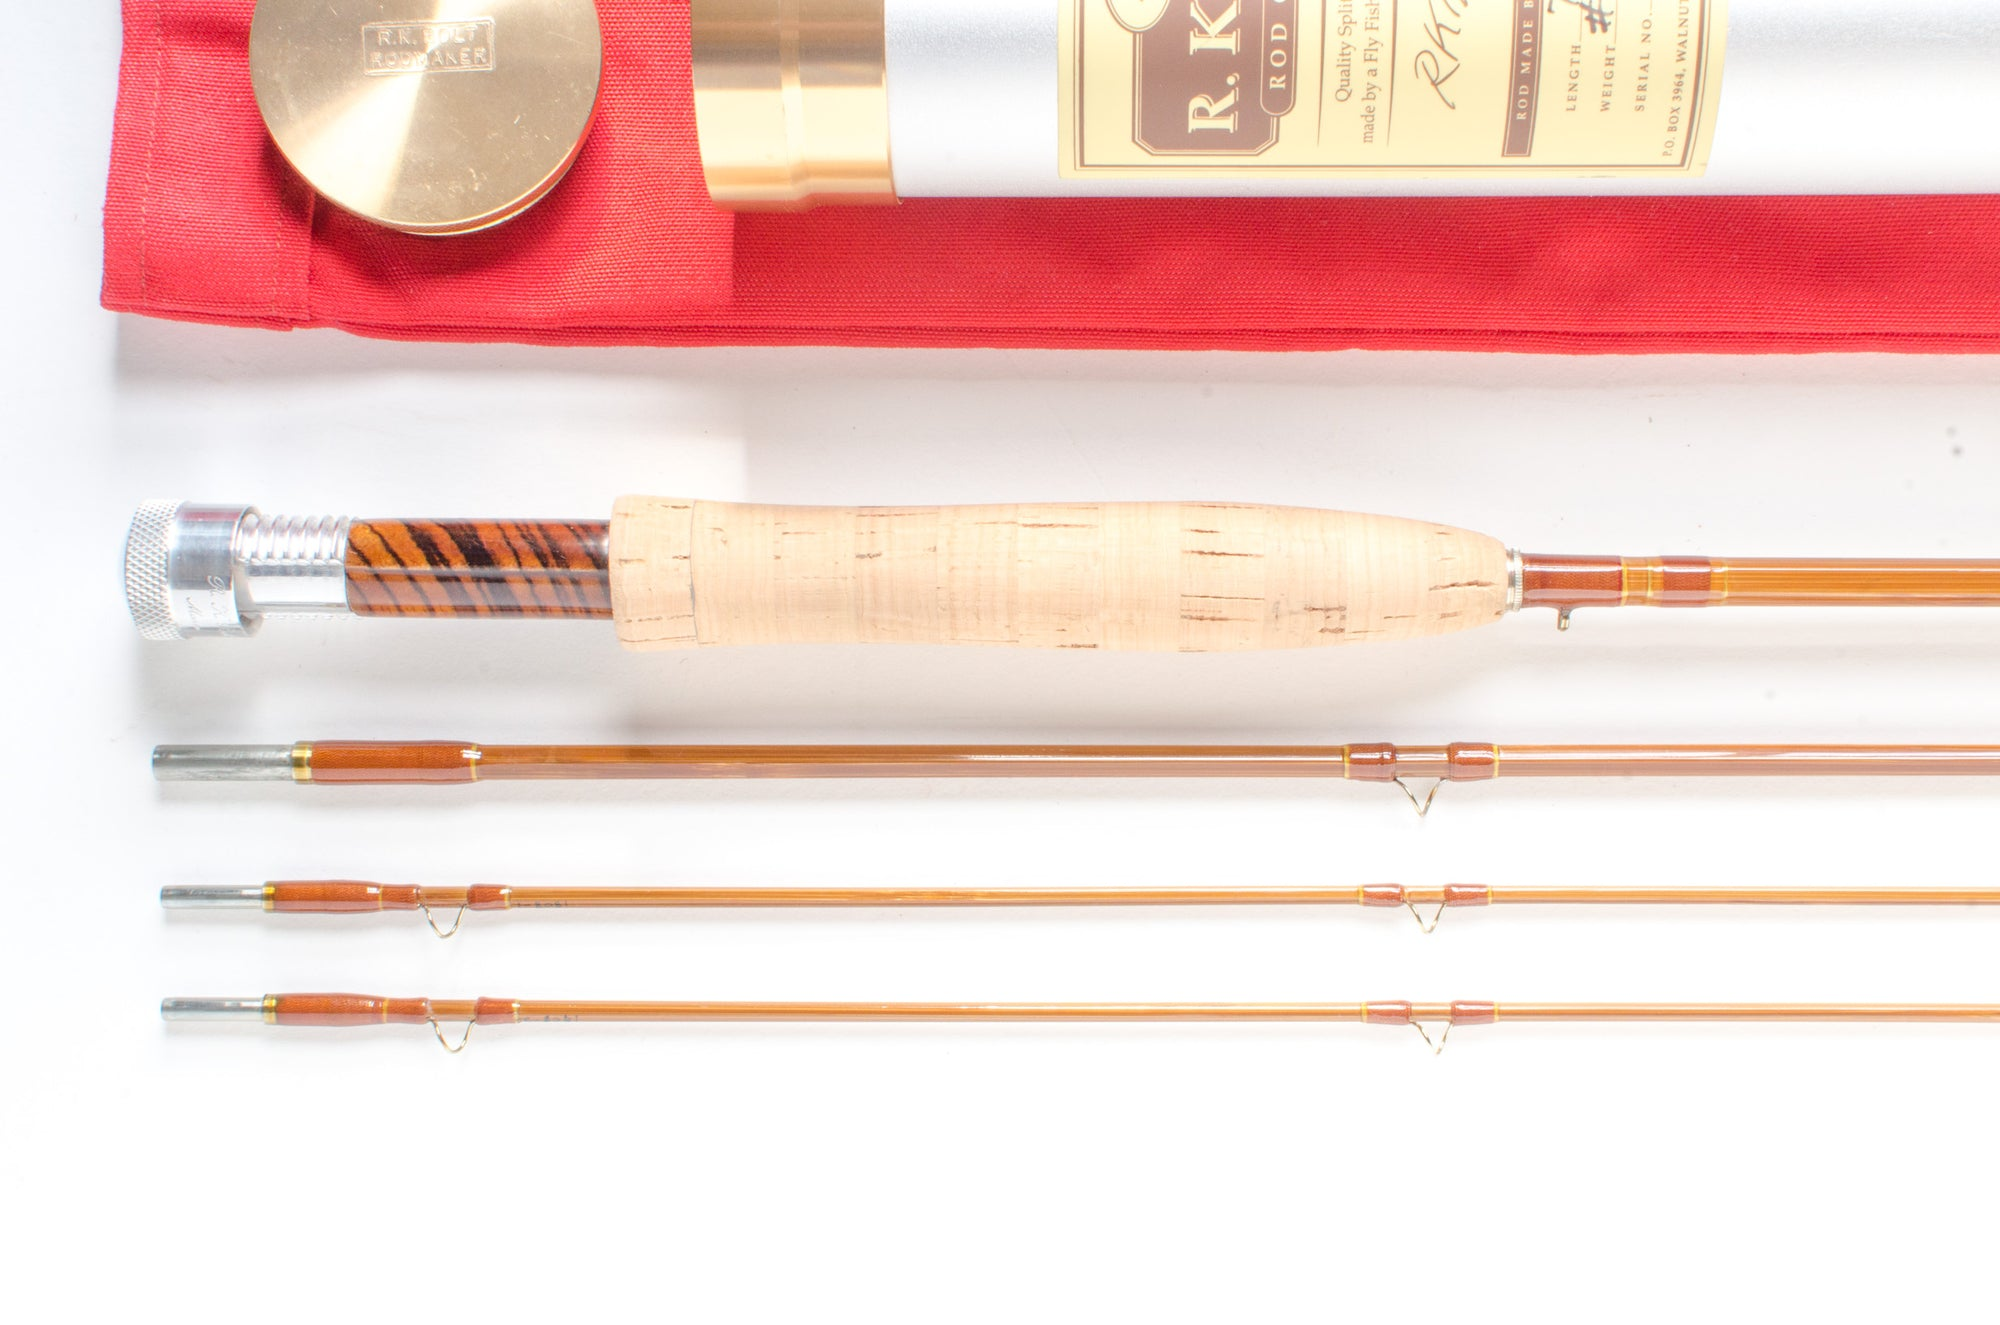 "RK Bolt Fly Rod 7'6"" 3/2 #4 [SALE PENDING]"